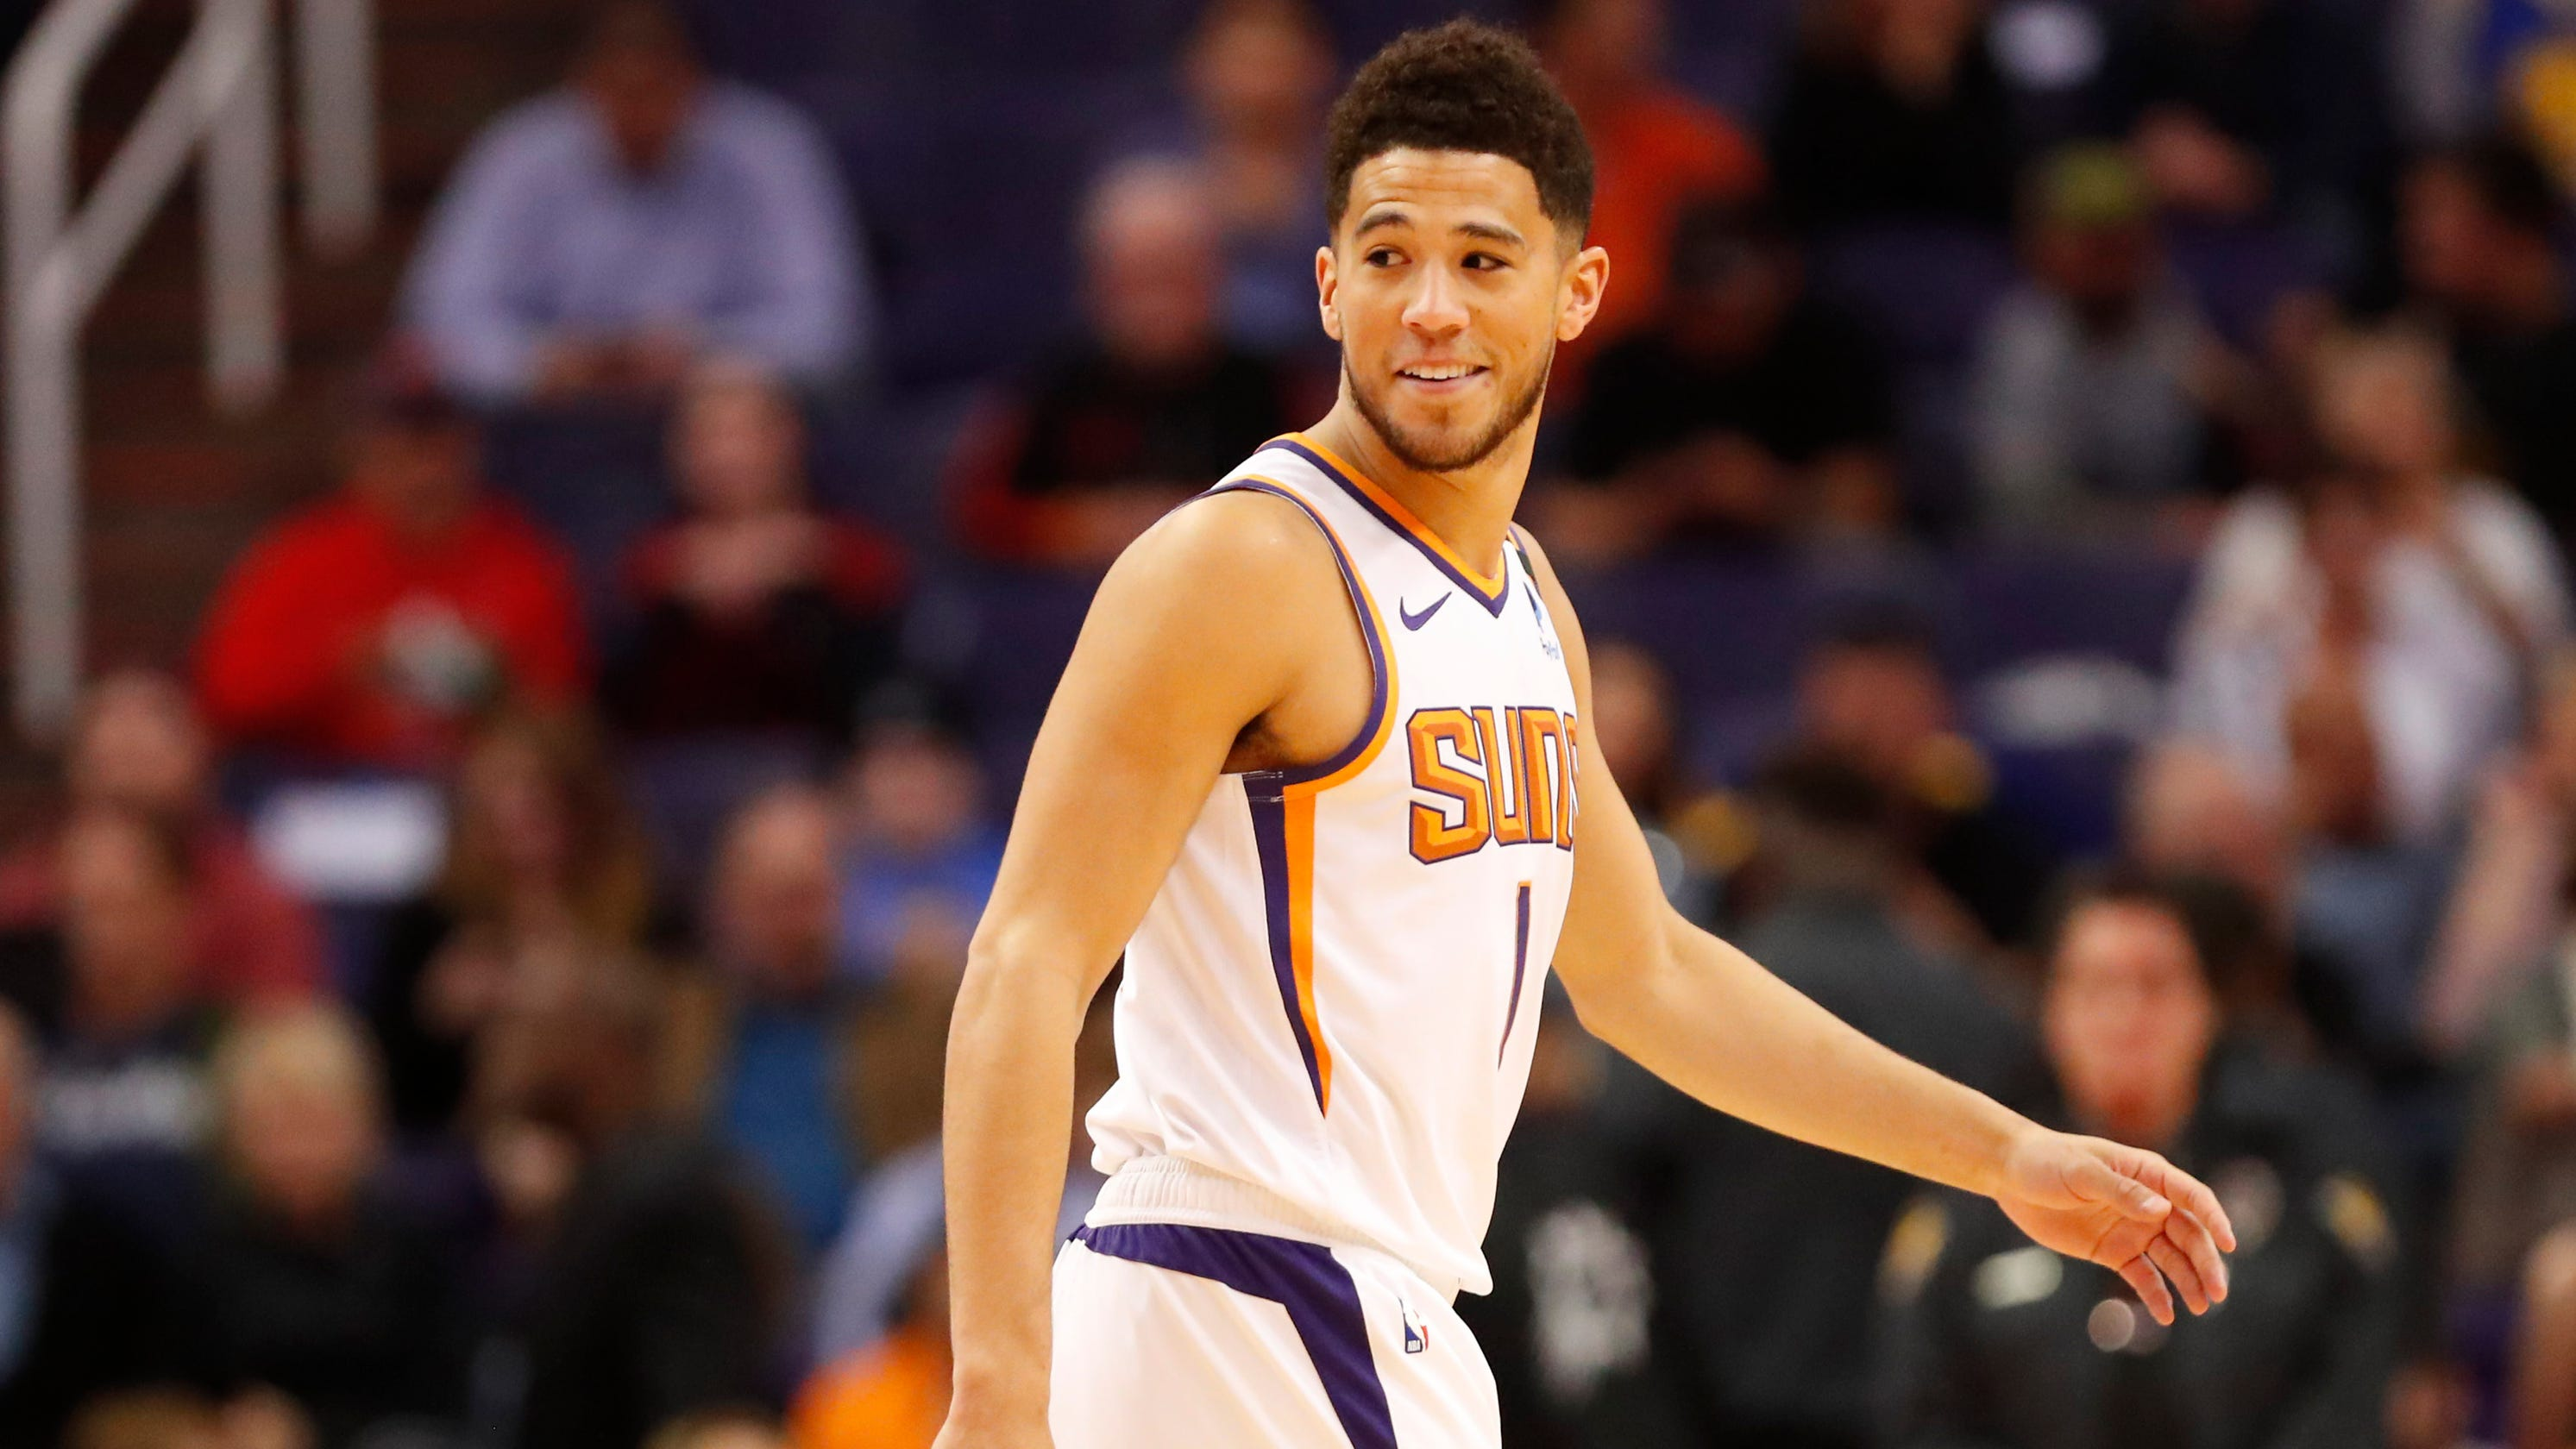 Devin Booker scores 27 in Suns' win over Warriors, may find spot in all-star game